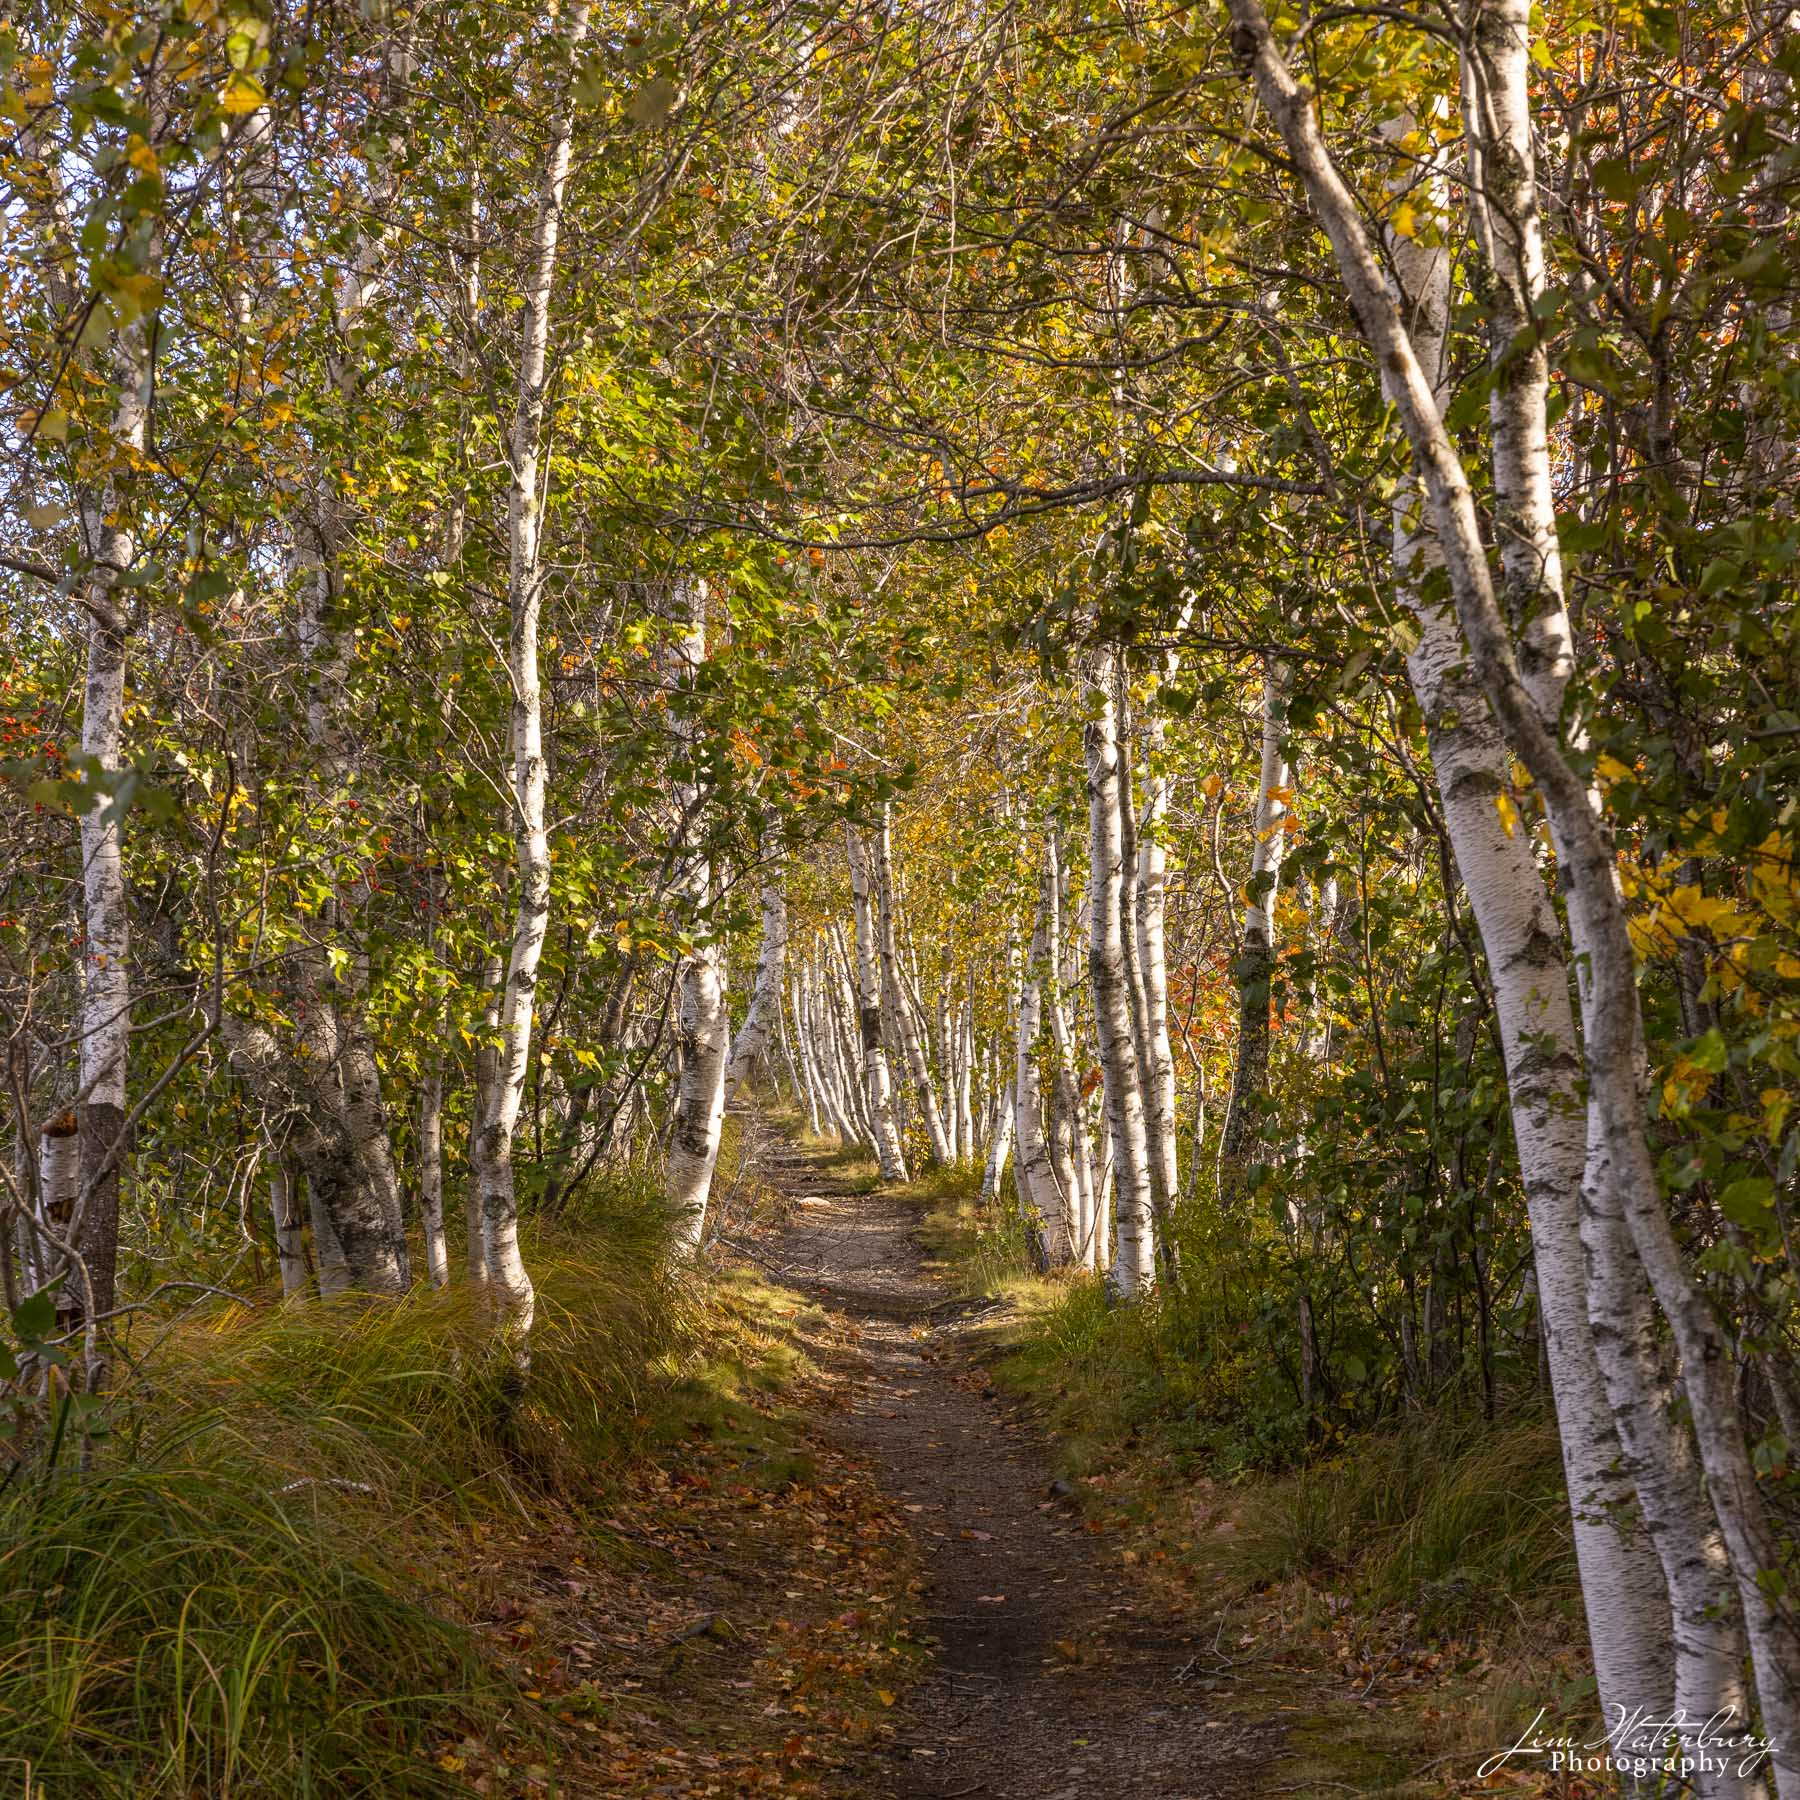 A small hiking trail leads through a forest of birch trees in fall, in Acadia National Park.